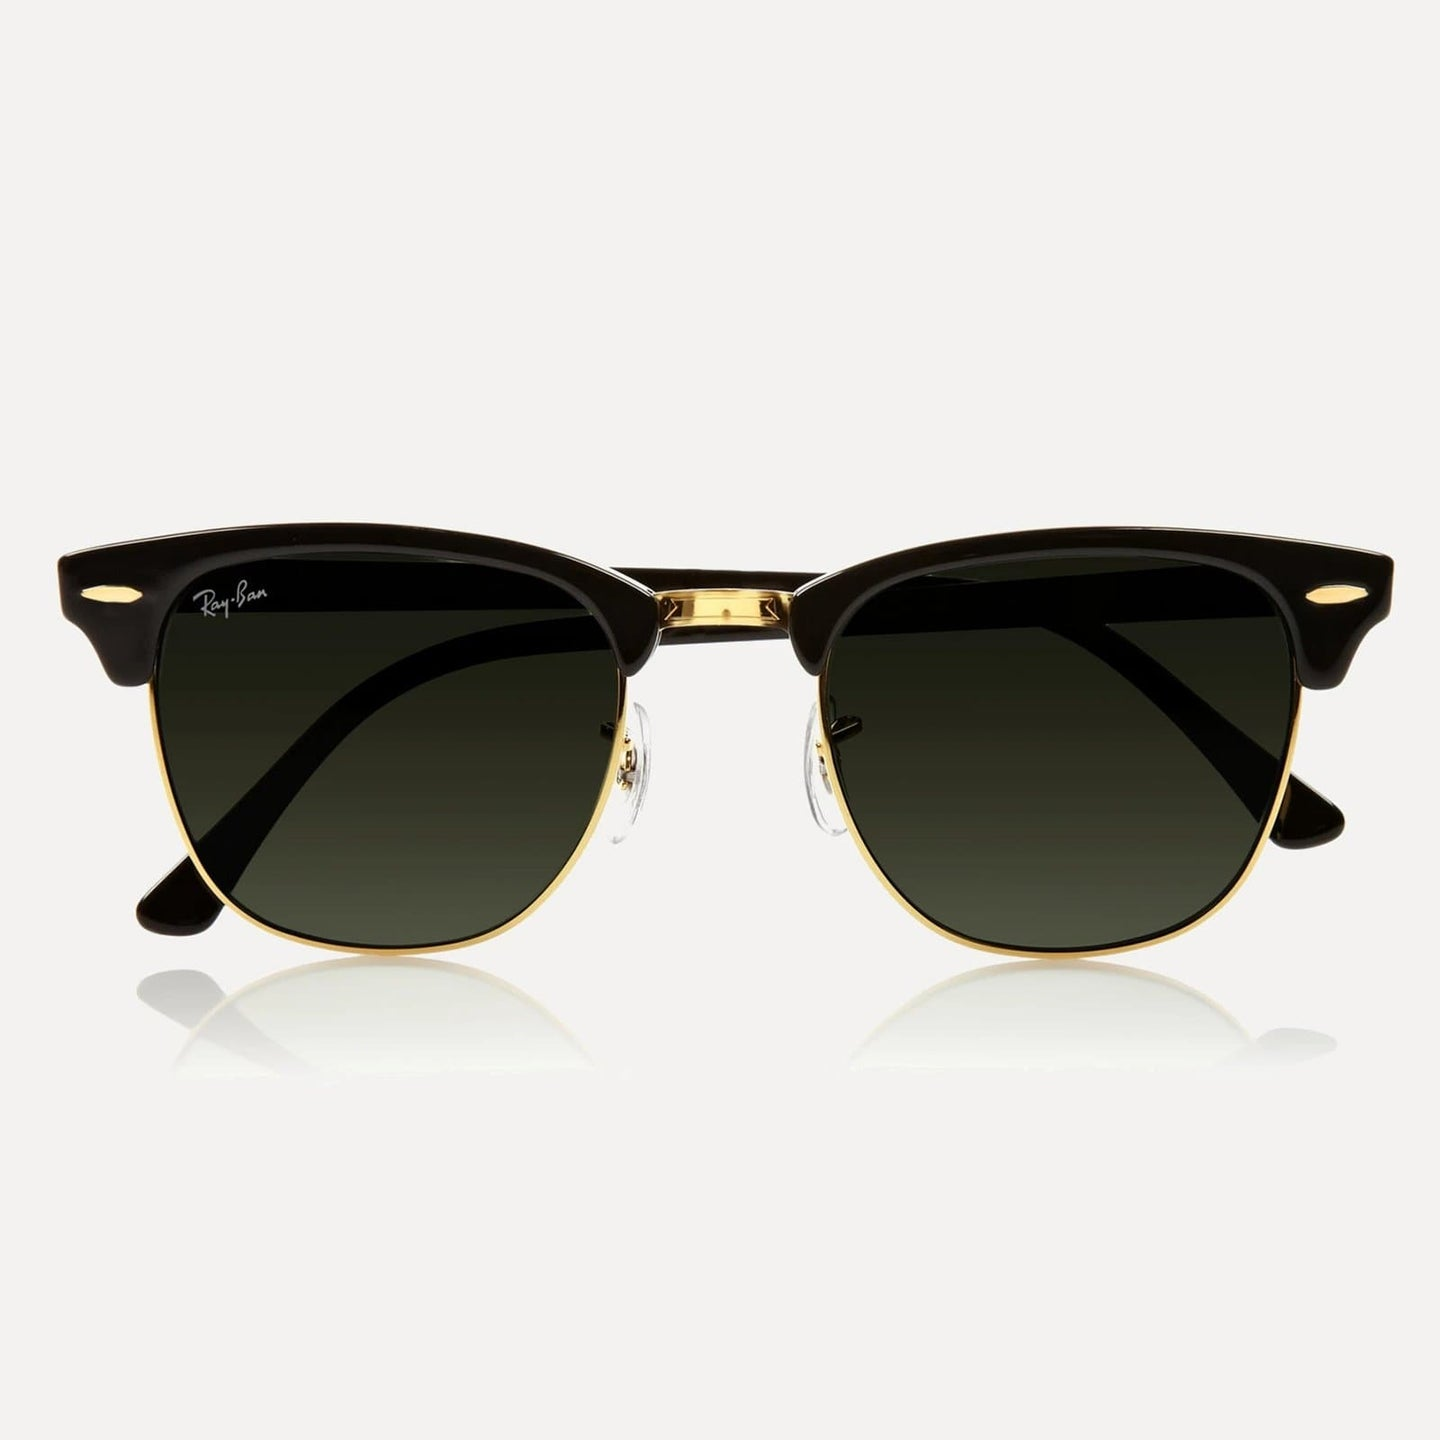 Classic Club Master Sunglasses With Box & Accessories-Export Fit